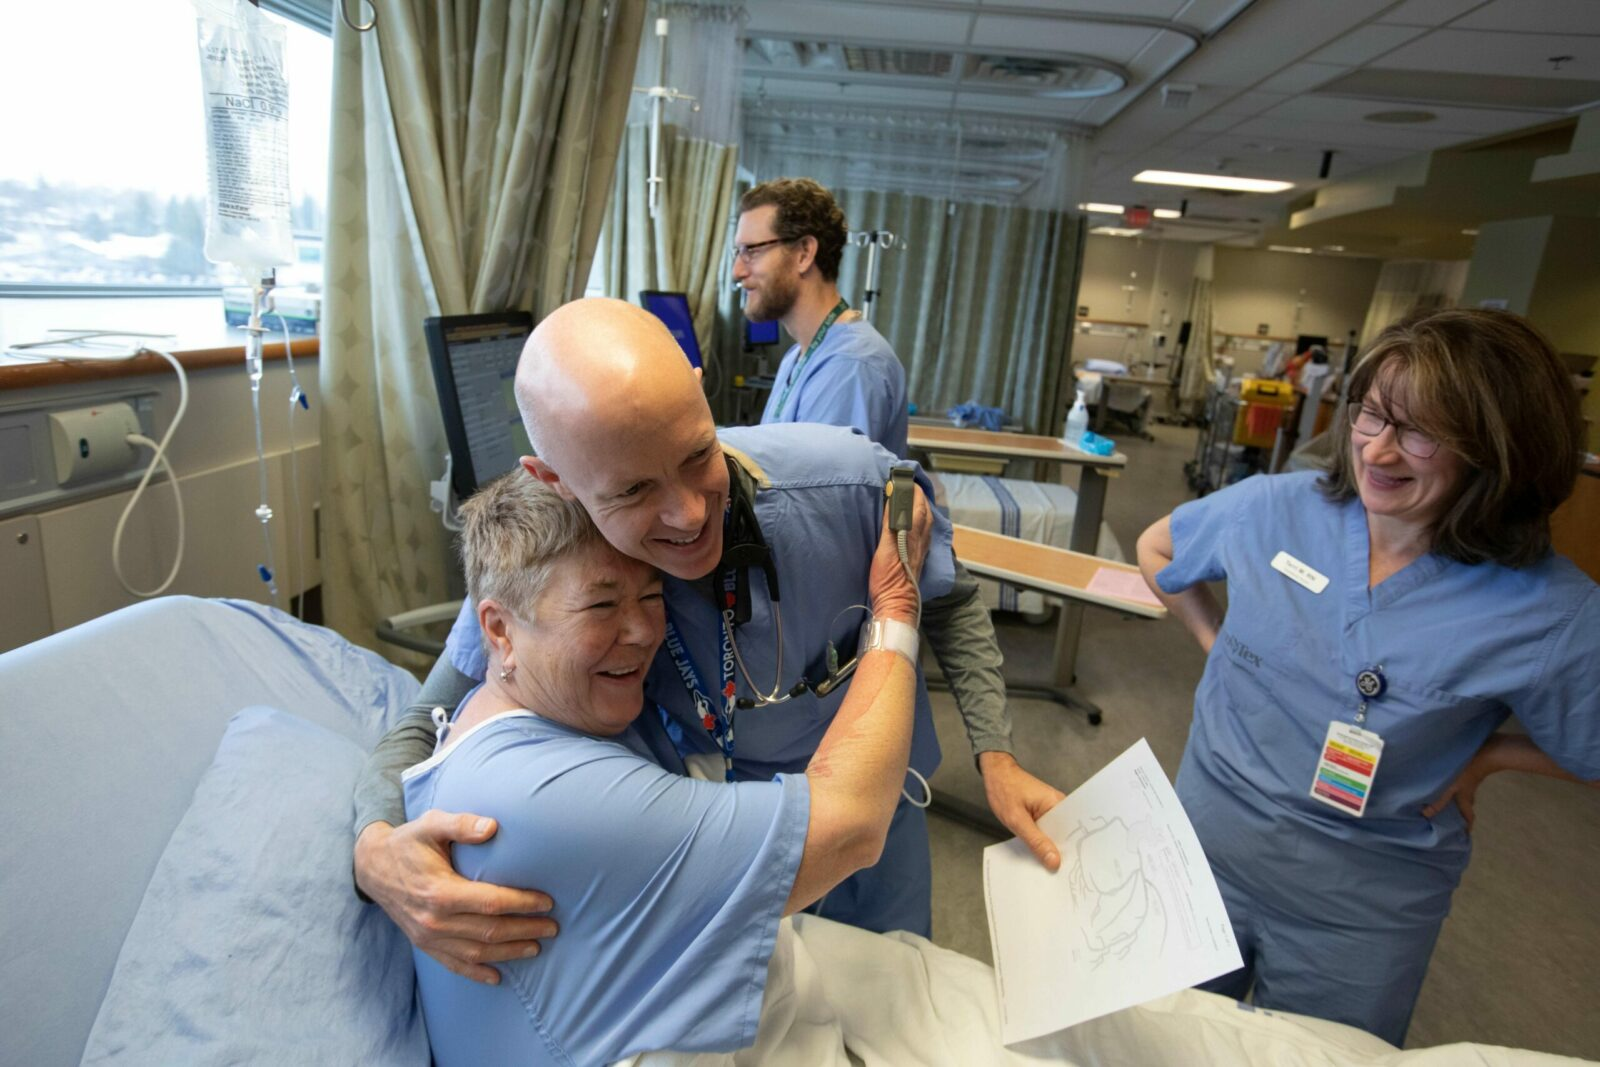 A patient and doctor embrace in a recovery room